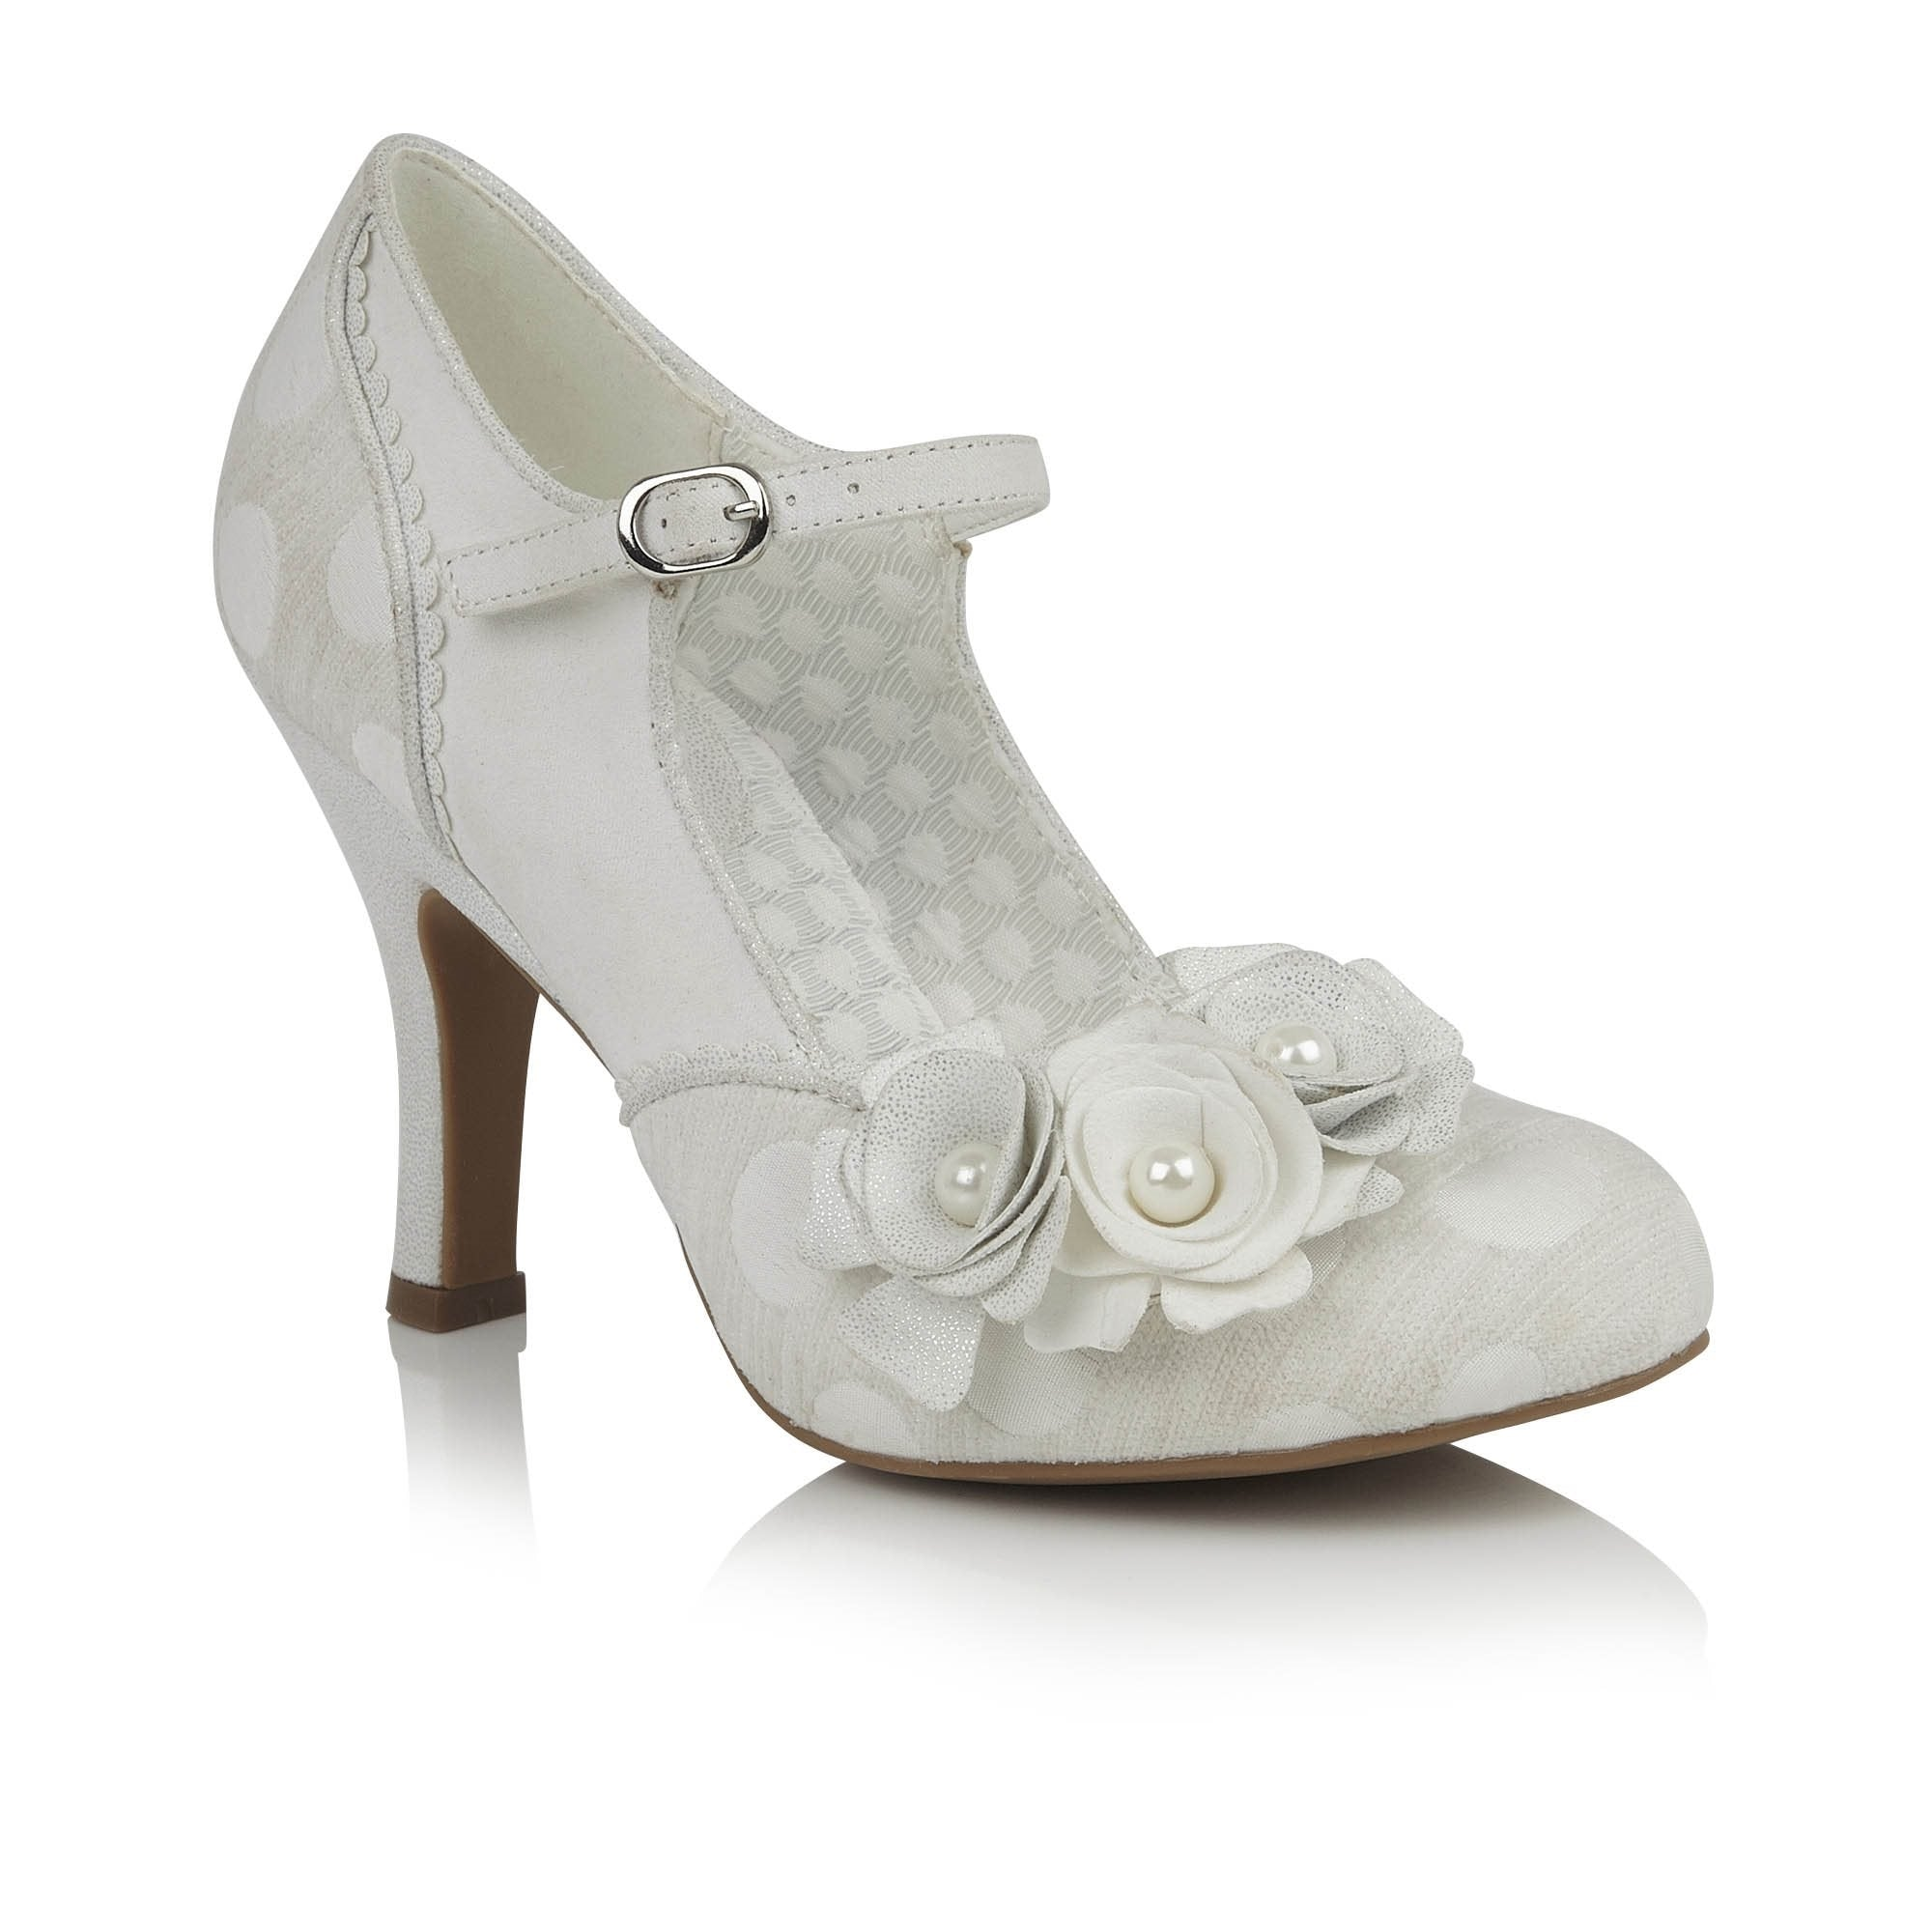 bc080f11db79b Ruby Shoo Antonia (White/Silver) – Rock Frocks